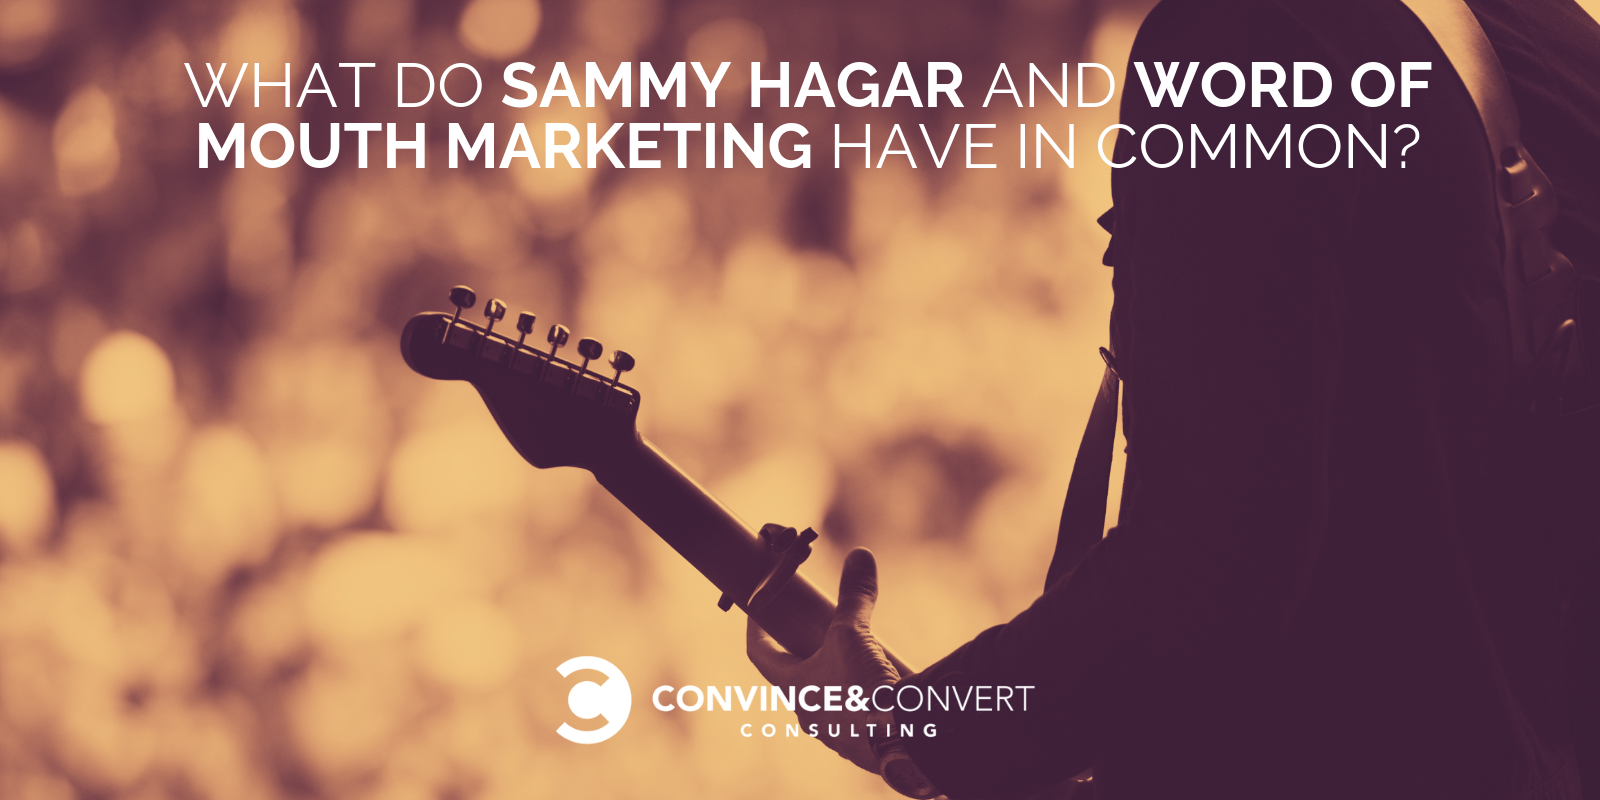 Sammy Hagar word of mouth marketing